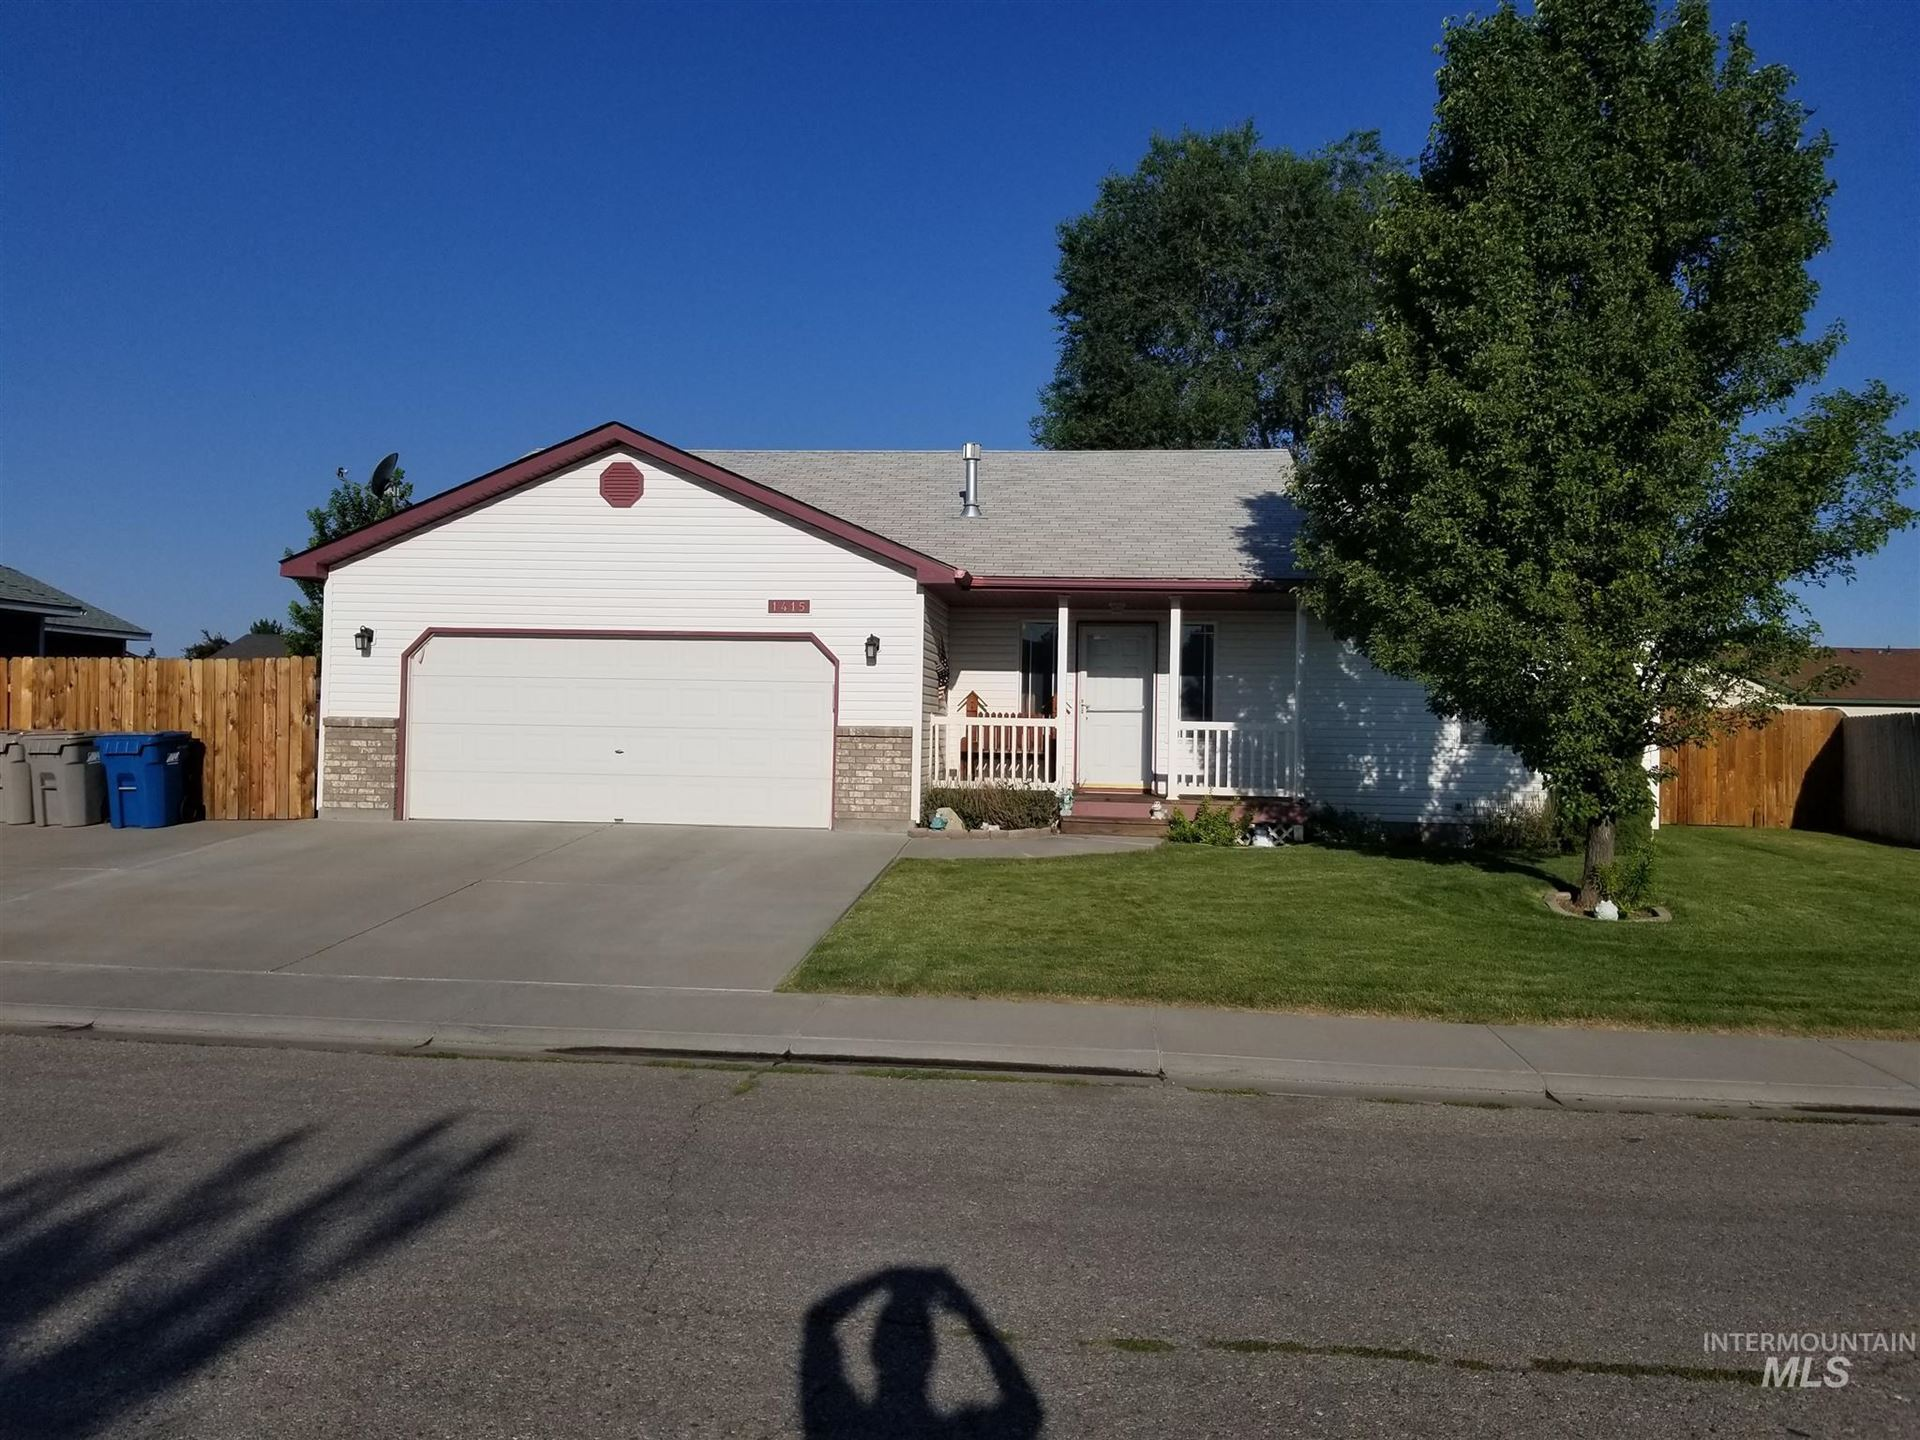 1415 priscilla st, Mountain Home, ID 83647 - MLS#: 98775879